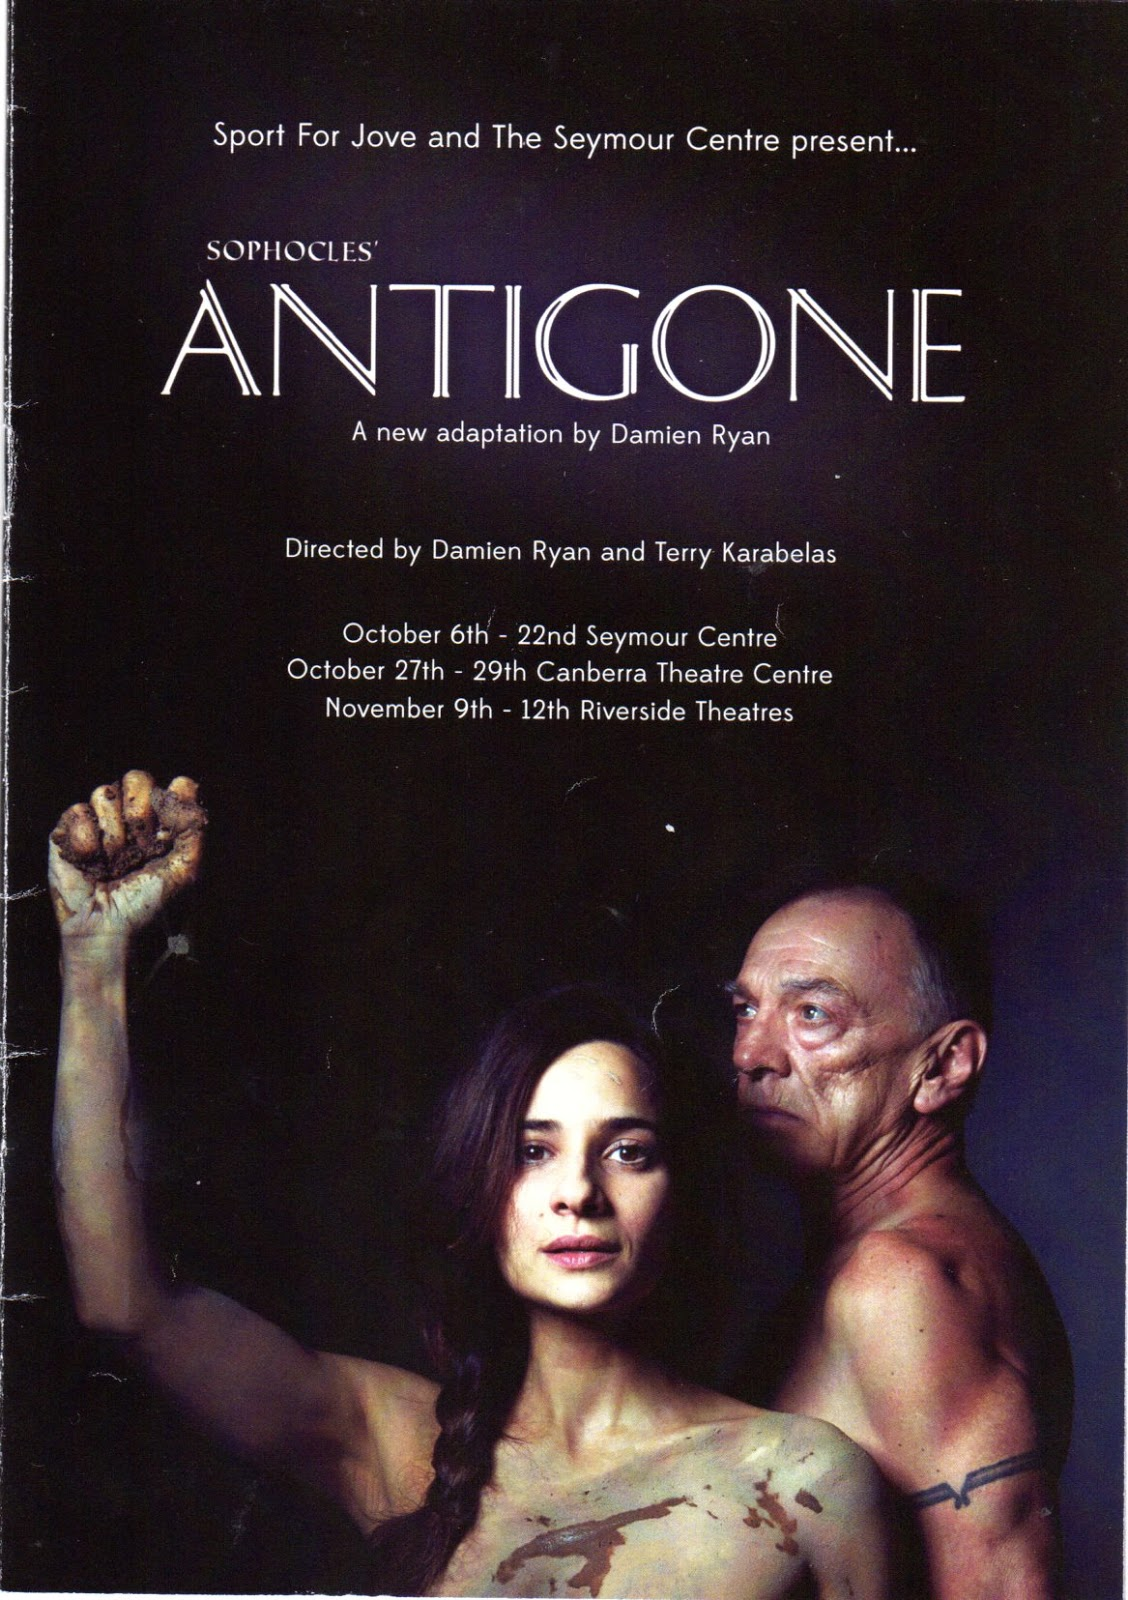 film adaptation of antigone Antigone project: soundtrack my group decided that the movie adaptation would be easier to pitch if it was set in the future, so i came up with a soundtrack based on the scenes i think this song portrays antigone's attitude of resignation and defeat along with ismene's desperation.